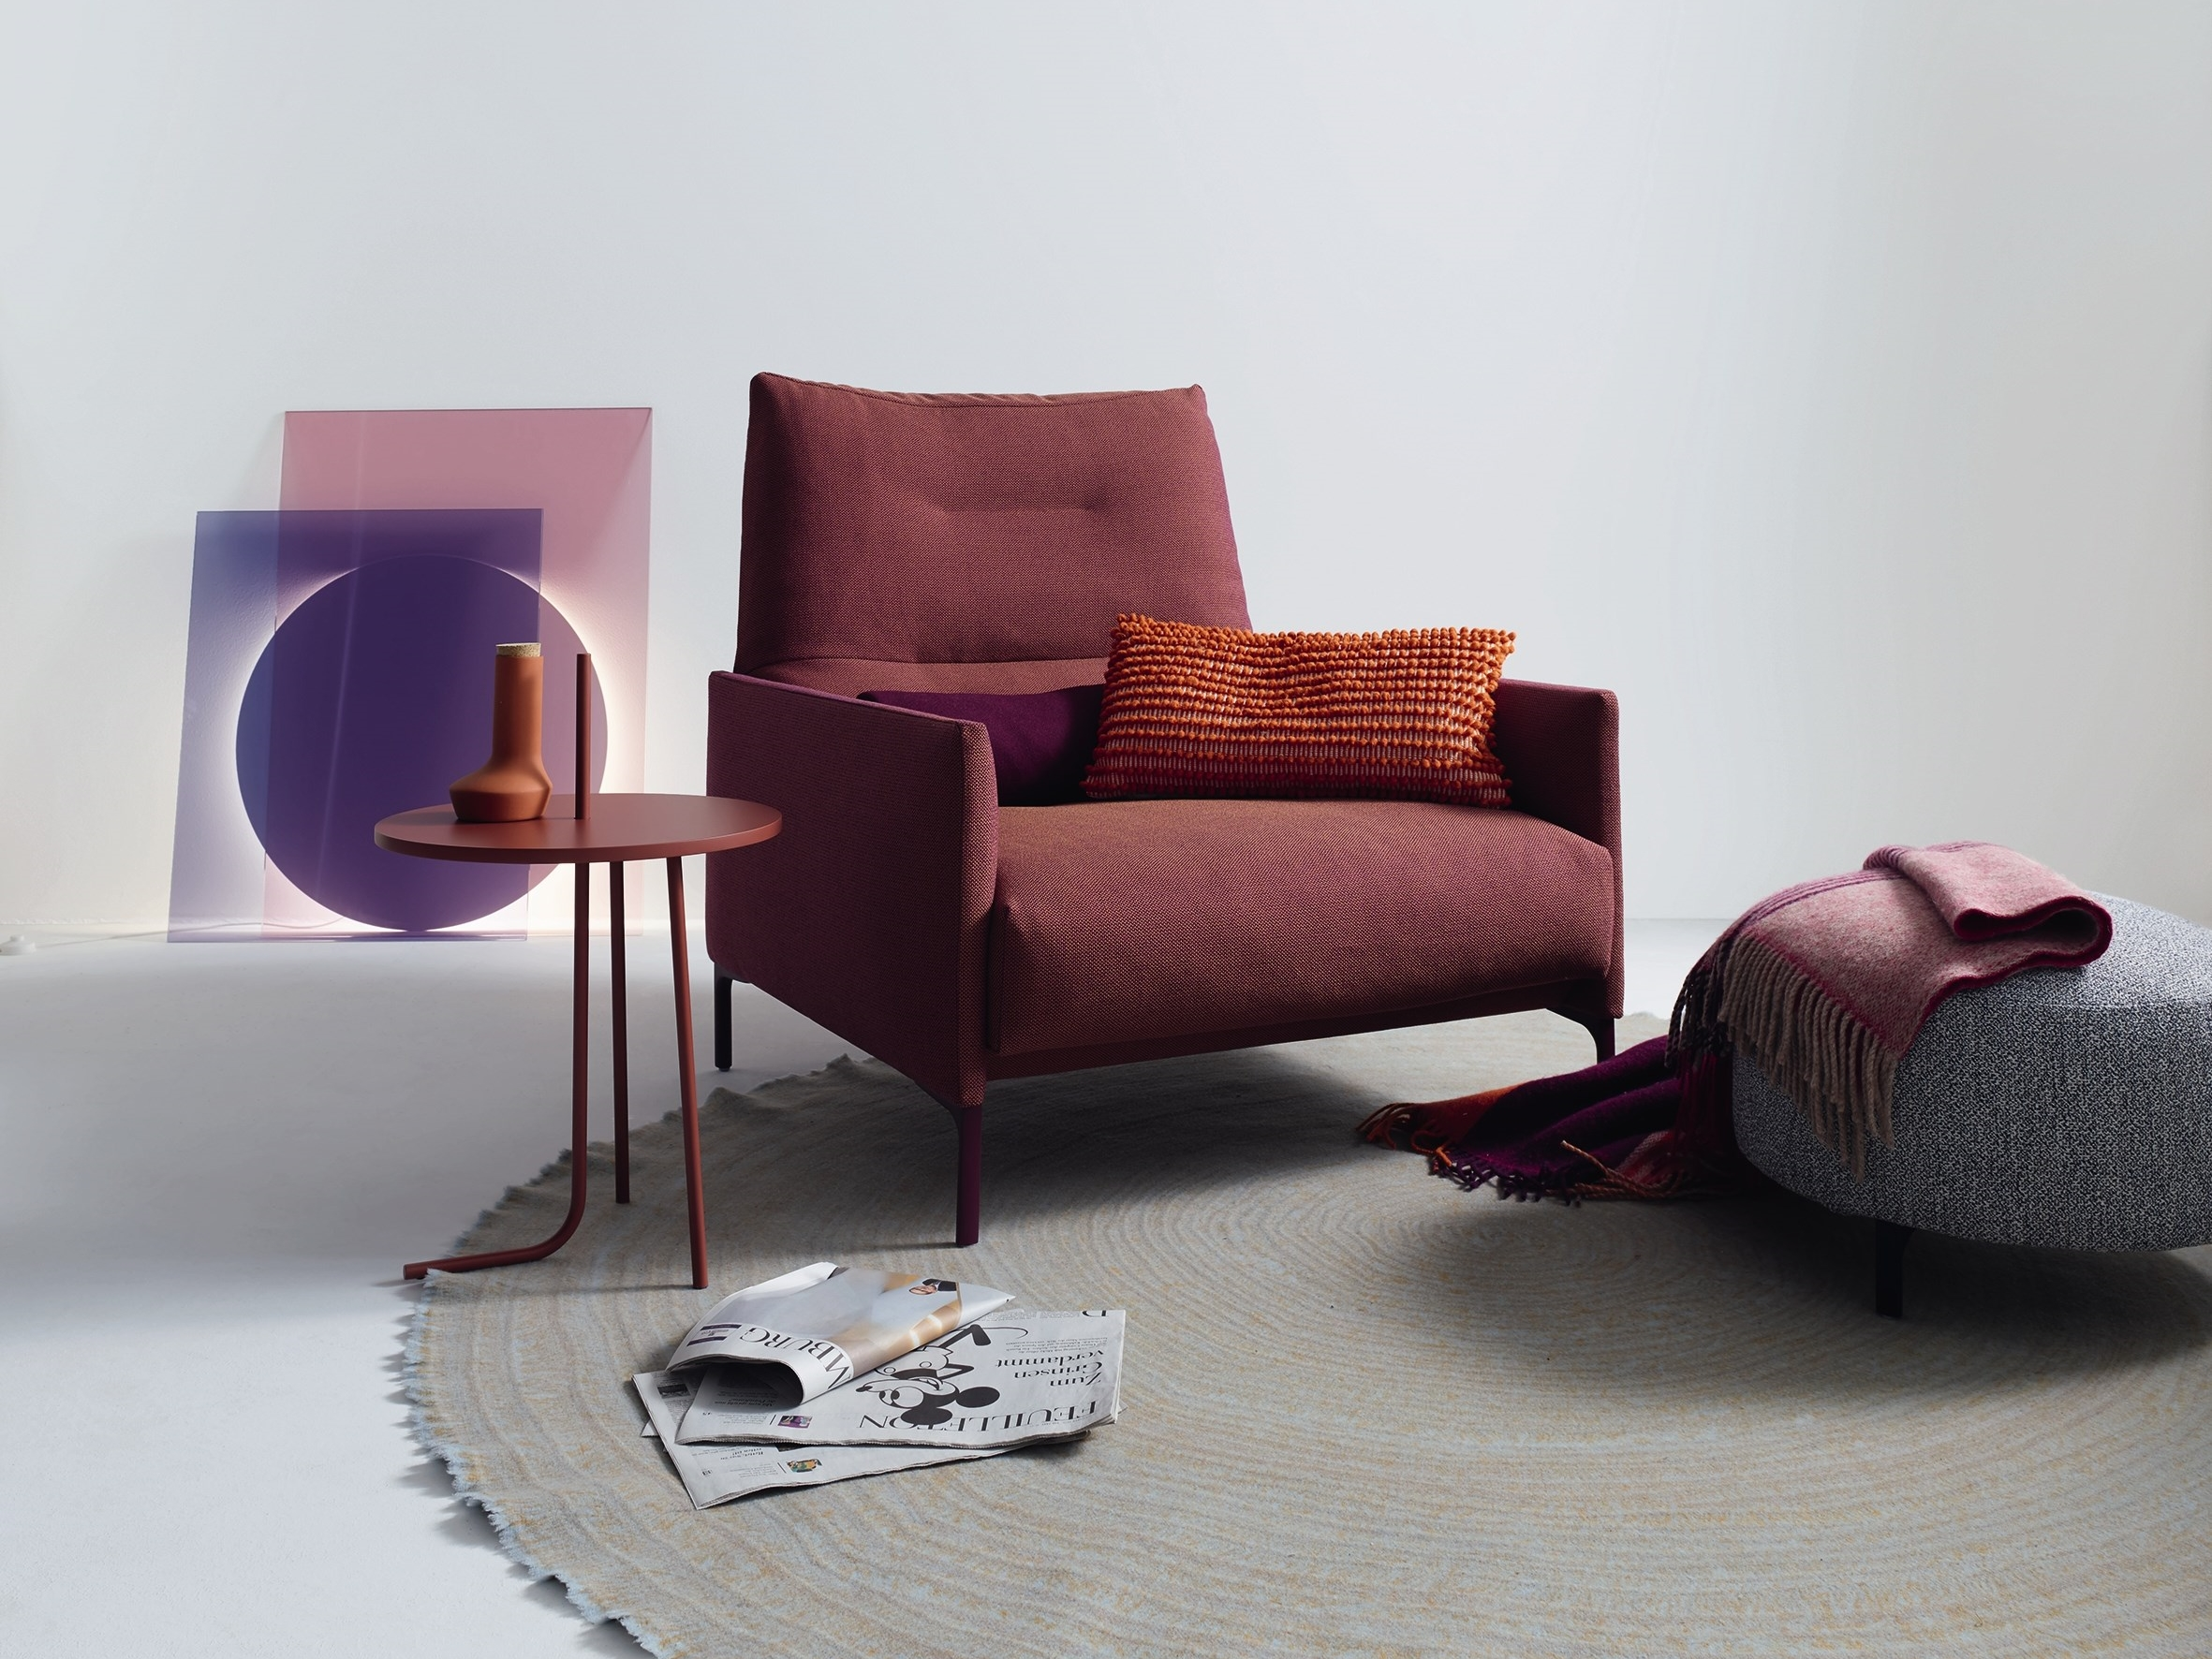 1568726764 413 oversized armchair designs reveal the best seat in the house - Oversized Armchair Designs Reveal The Best Seat In The House